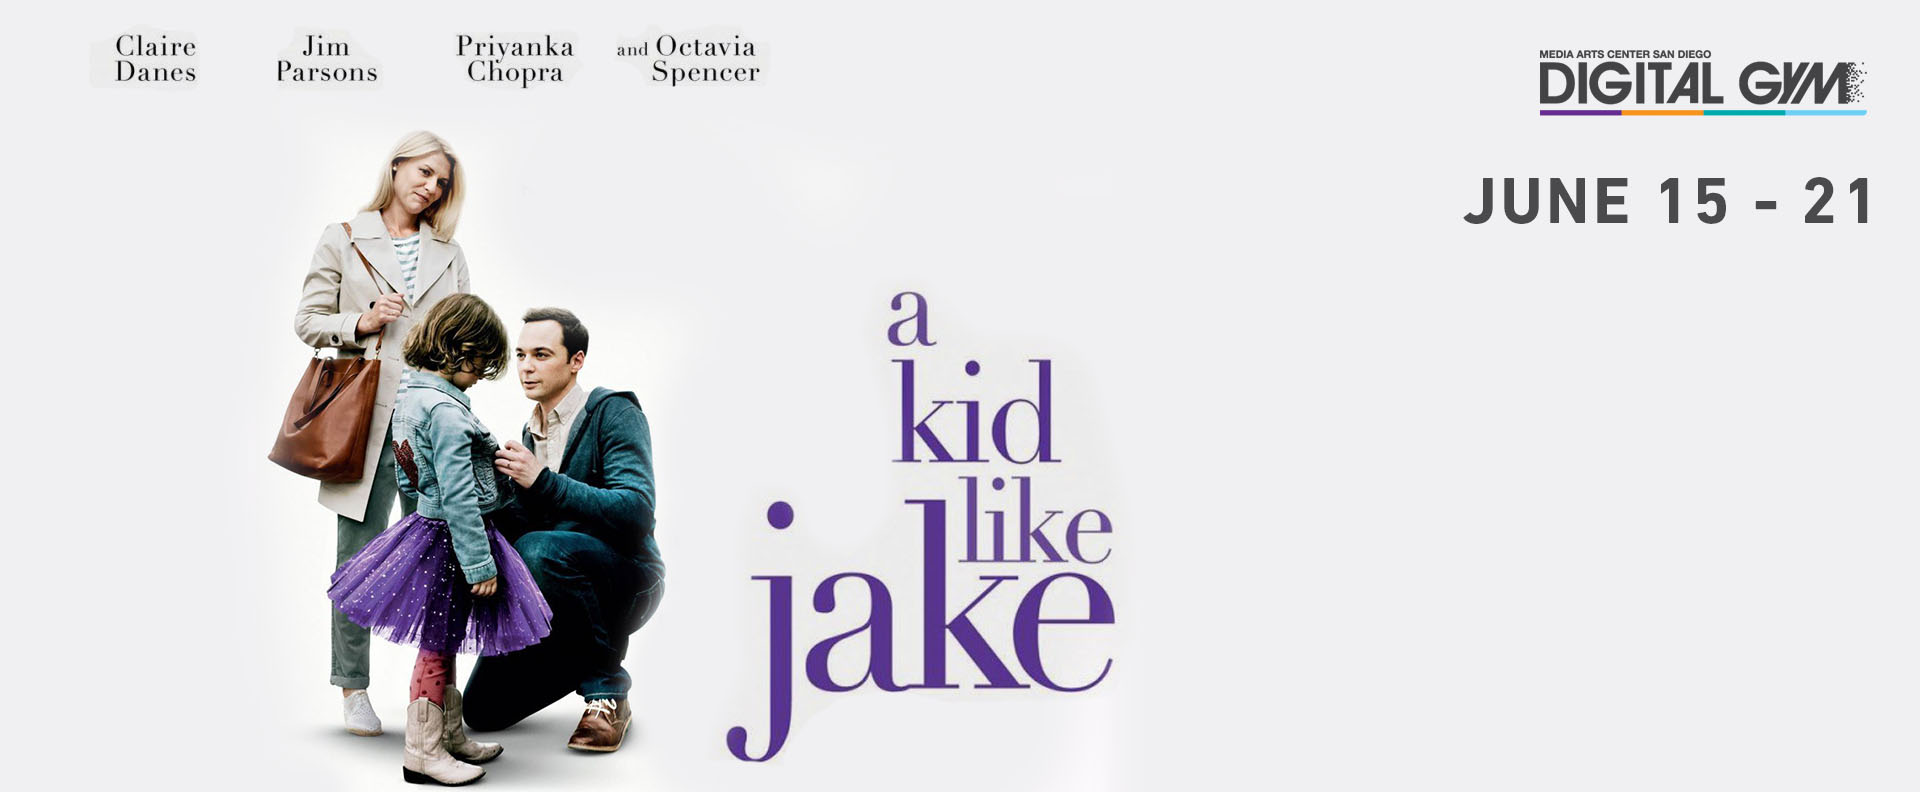 Claire Danes and Jim Parsons star in A Kid Like Jake (June 15 – June 21)